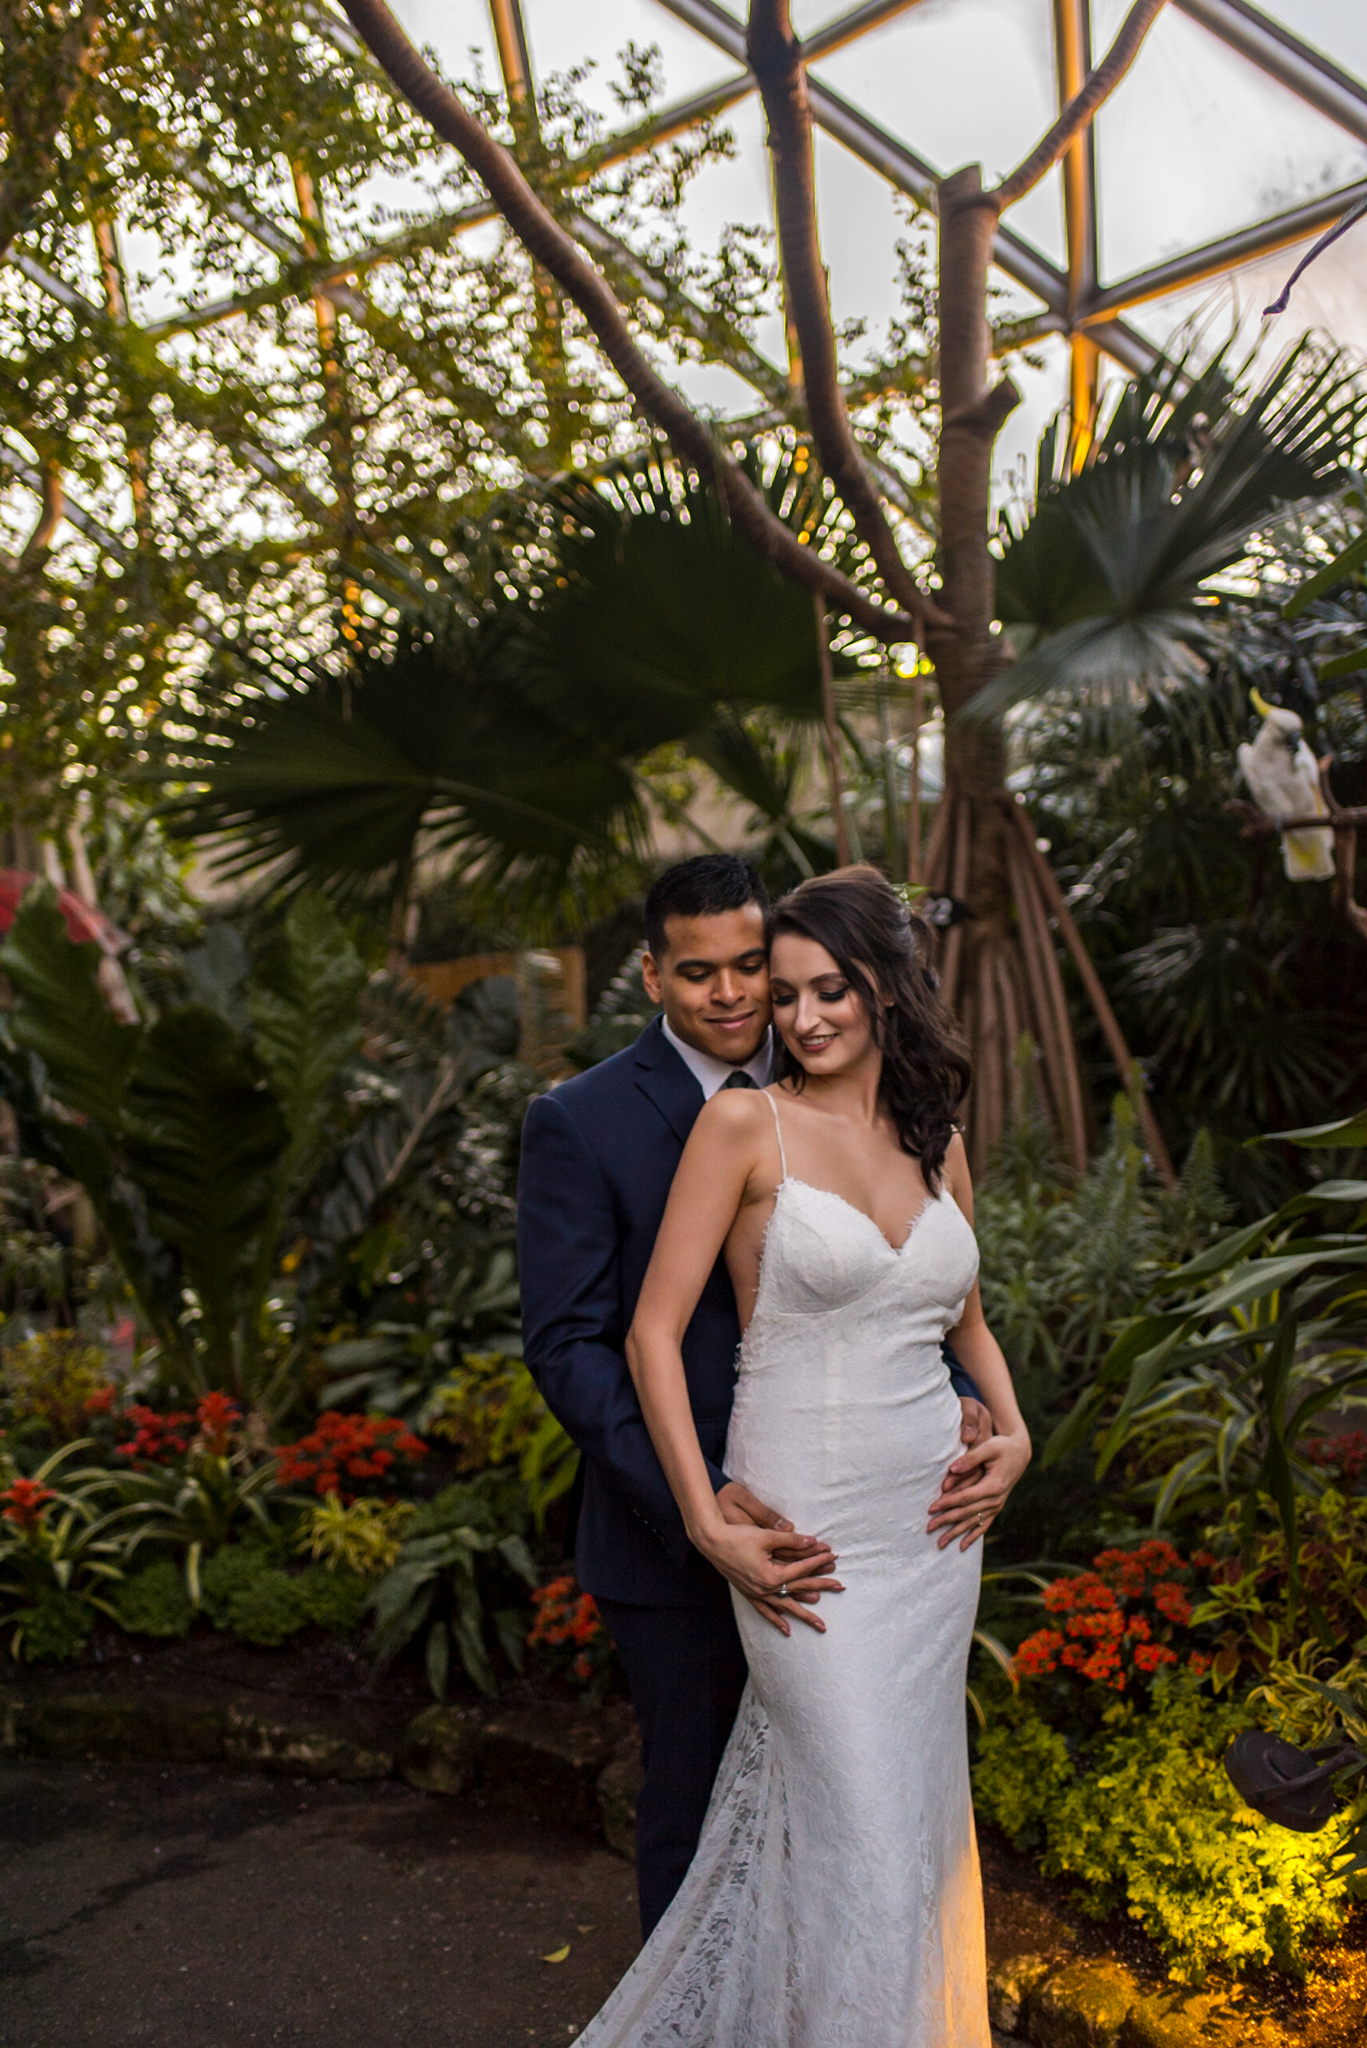 Queen Elizabeth Park Wedding Photographer-67.jpg